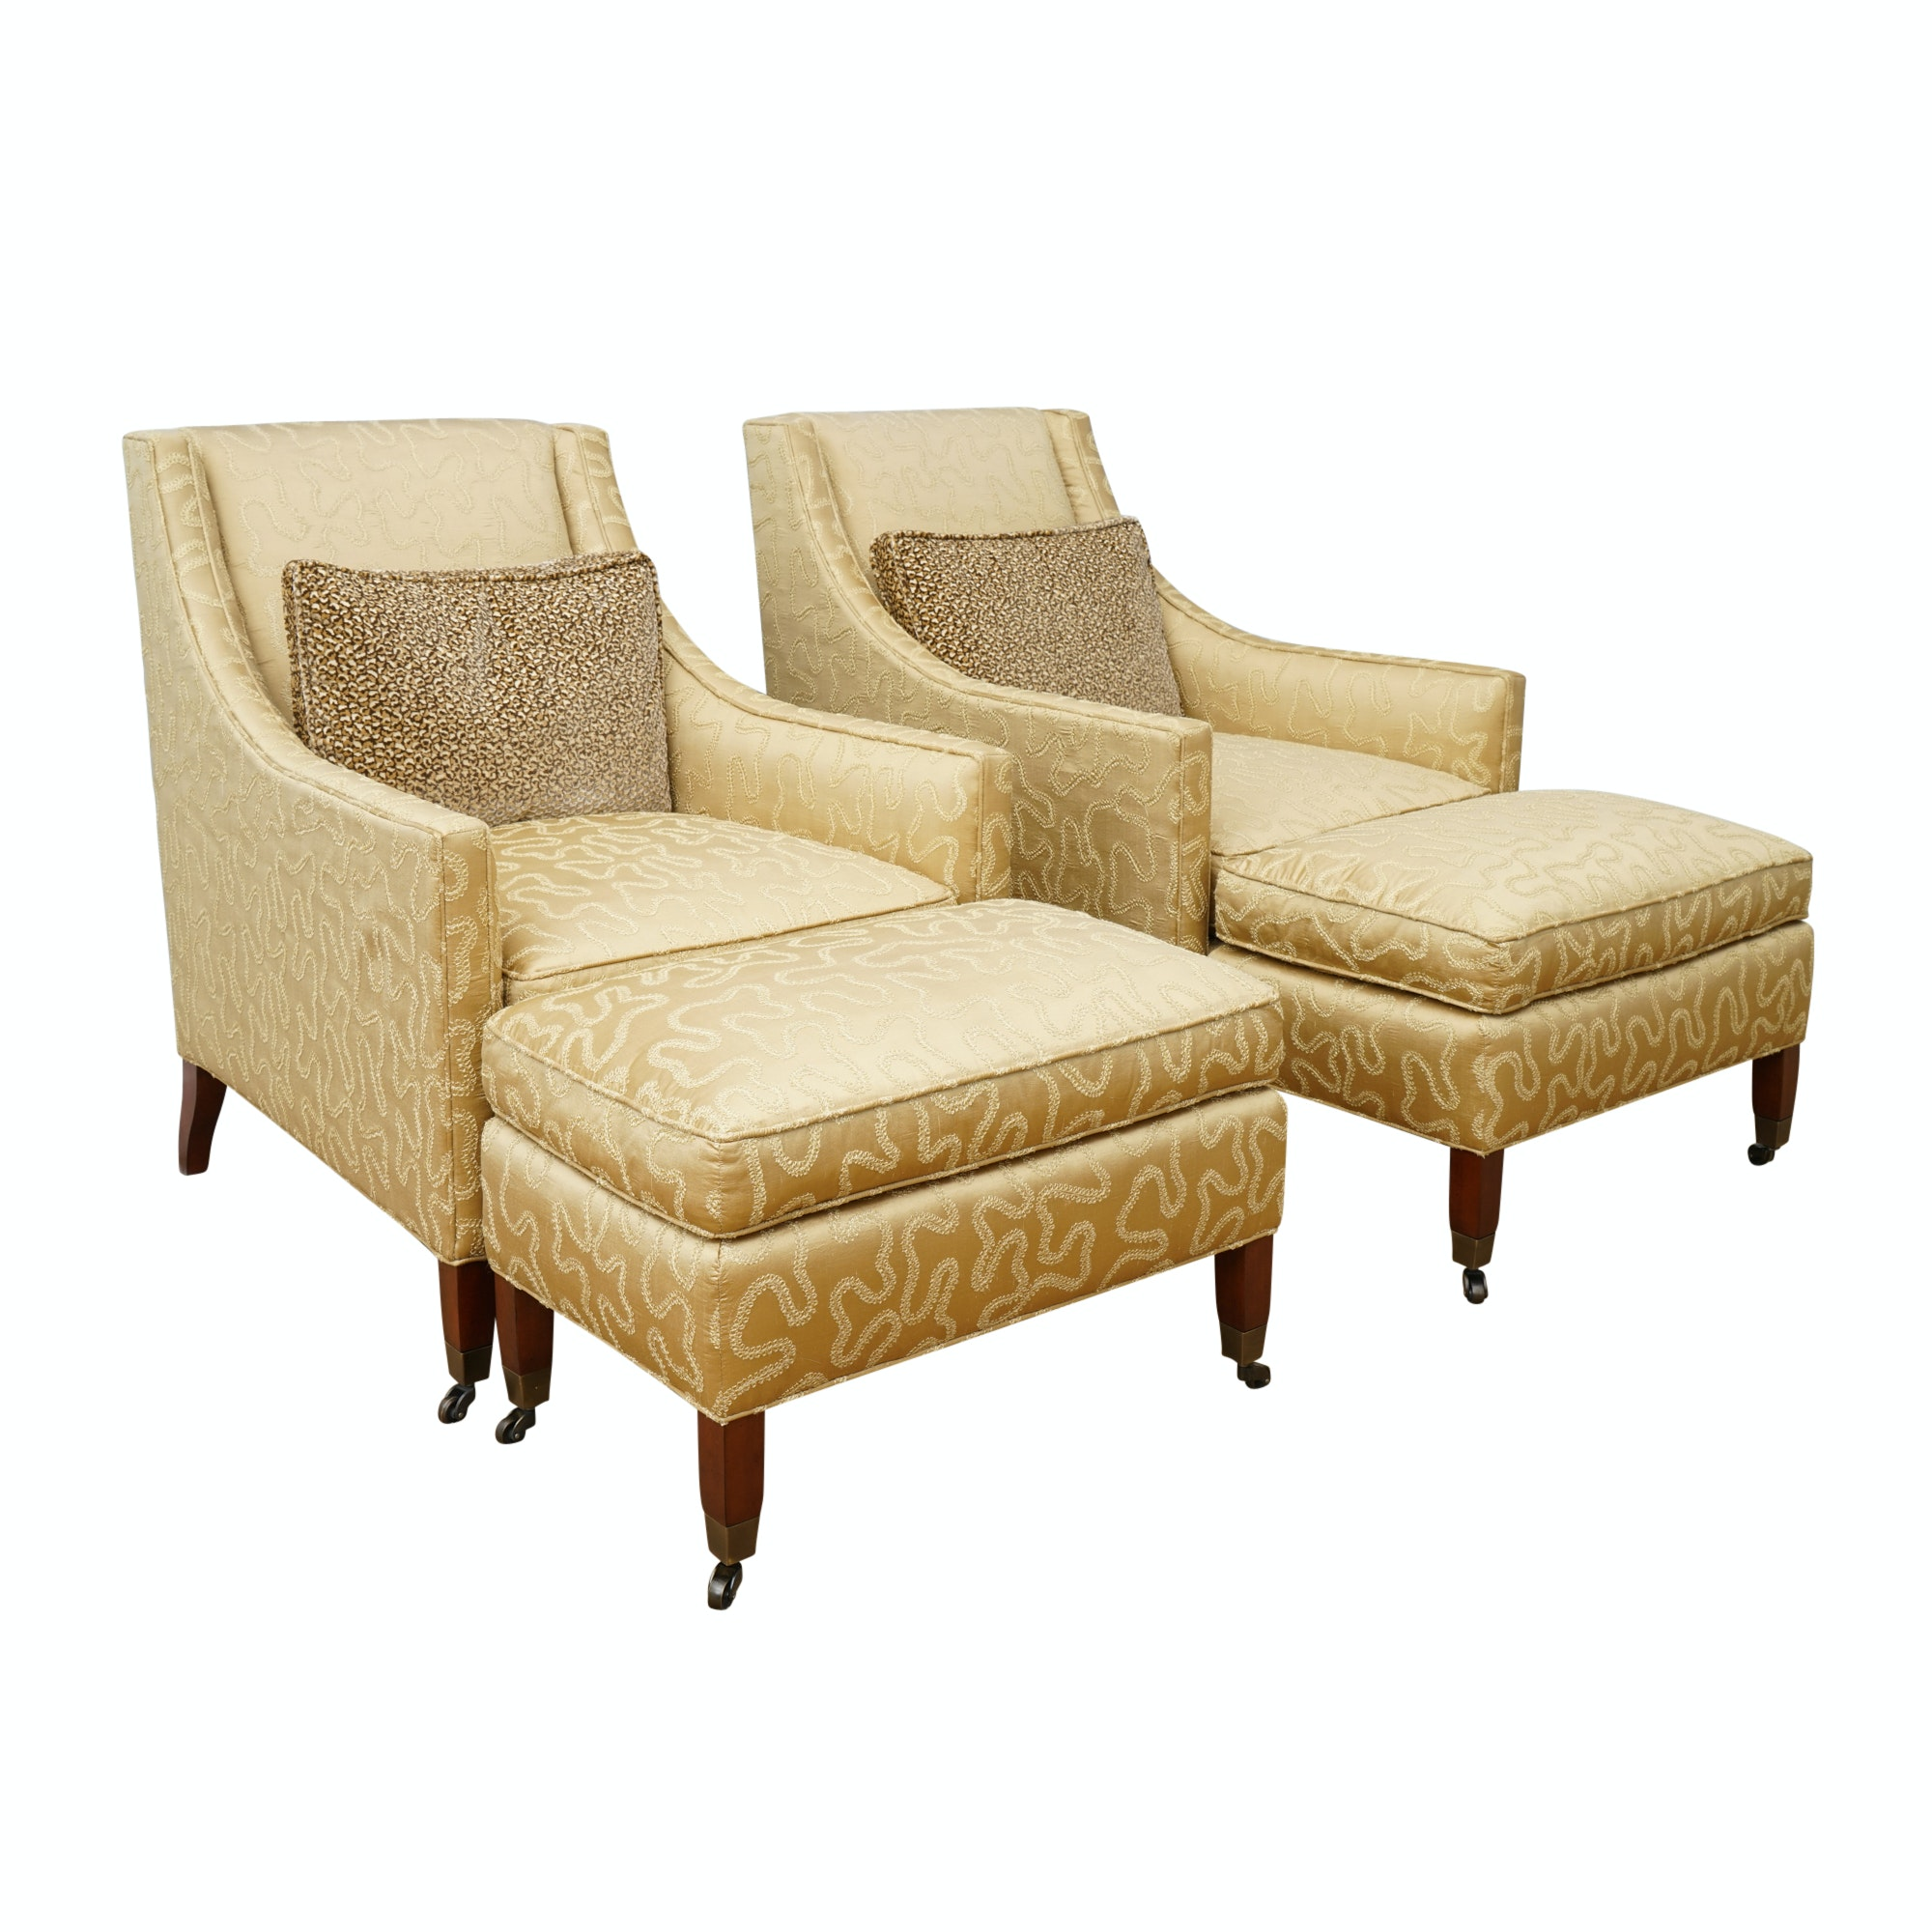 Pair of Mid Century Modern Style Armchairs and Ottomans by Duralee